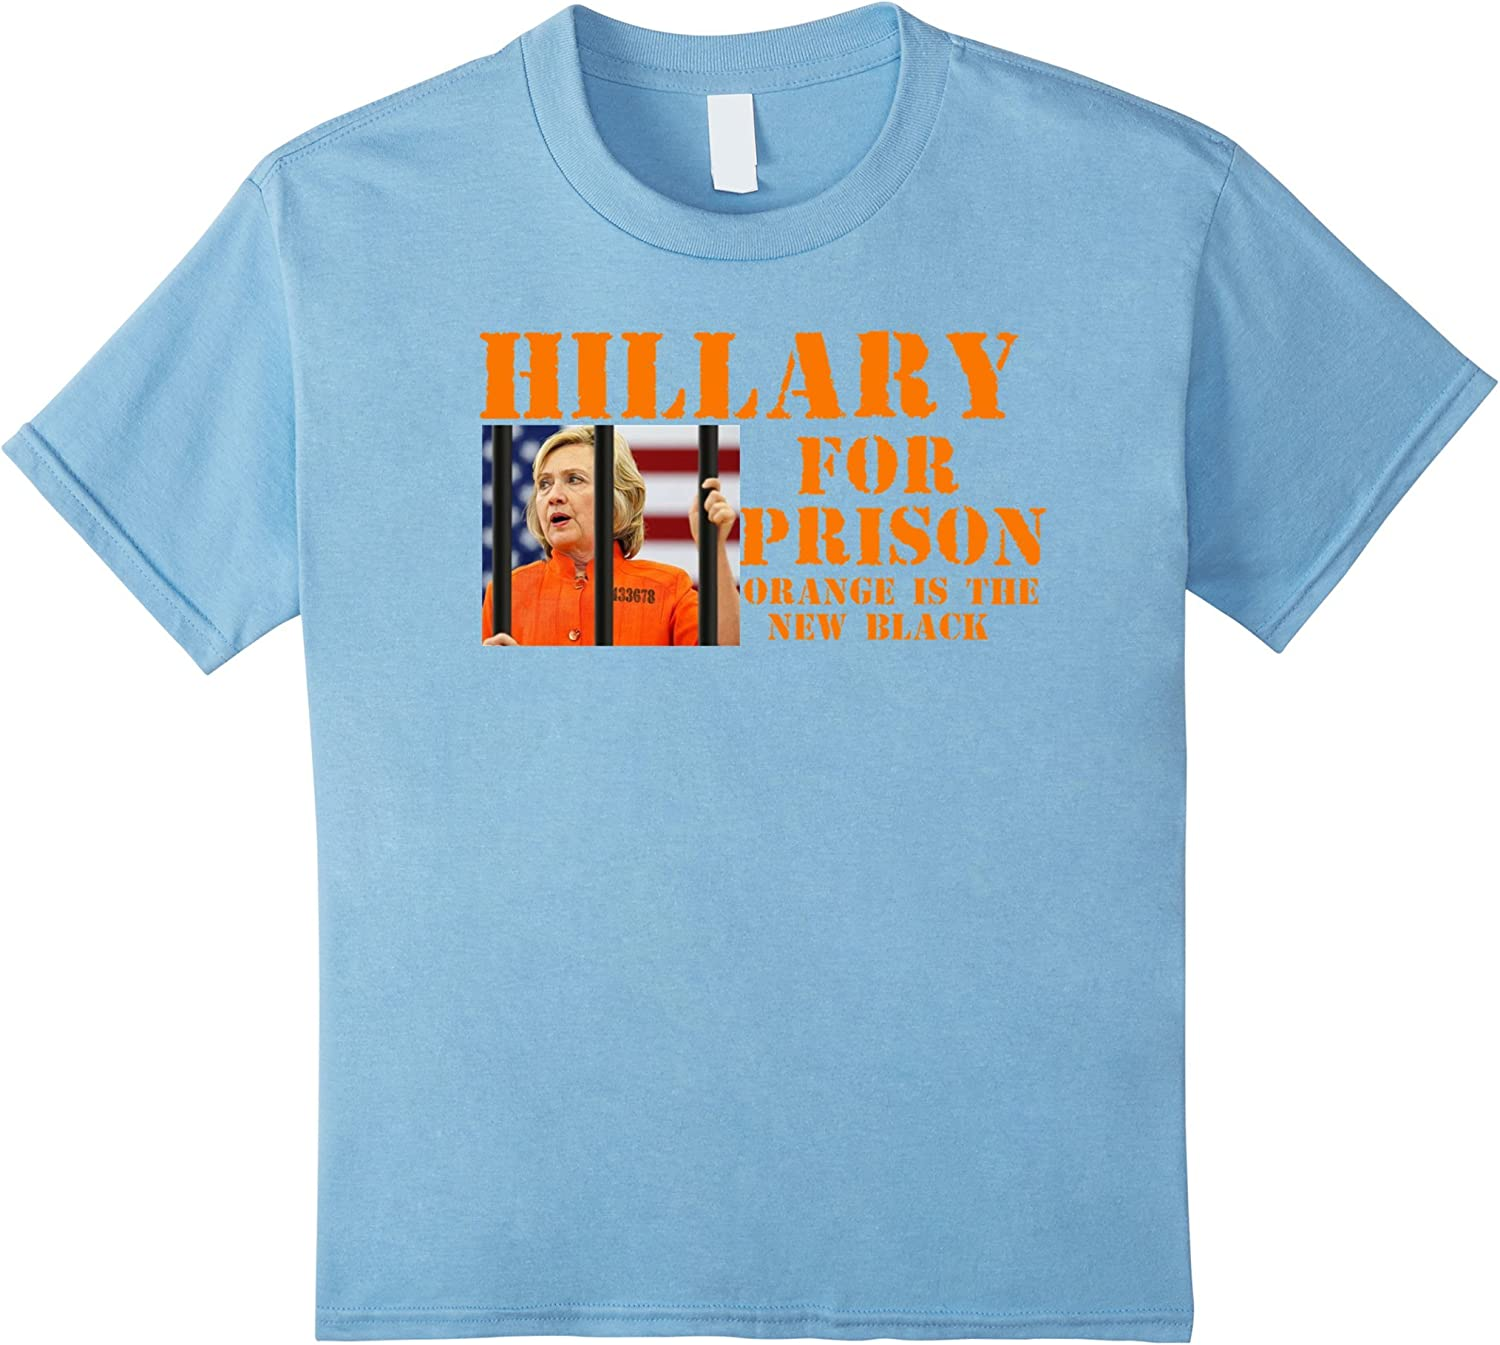 Kids Hillary Clinton For Prison Funny T Shirt 4 Baby Blue Amazon Co Uk Clothing